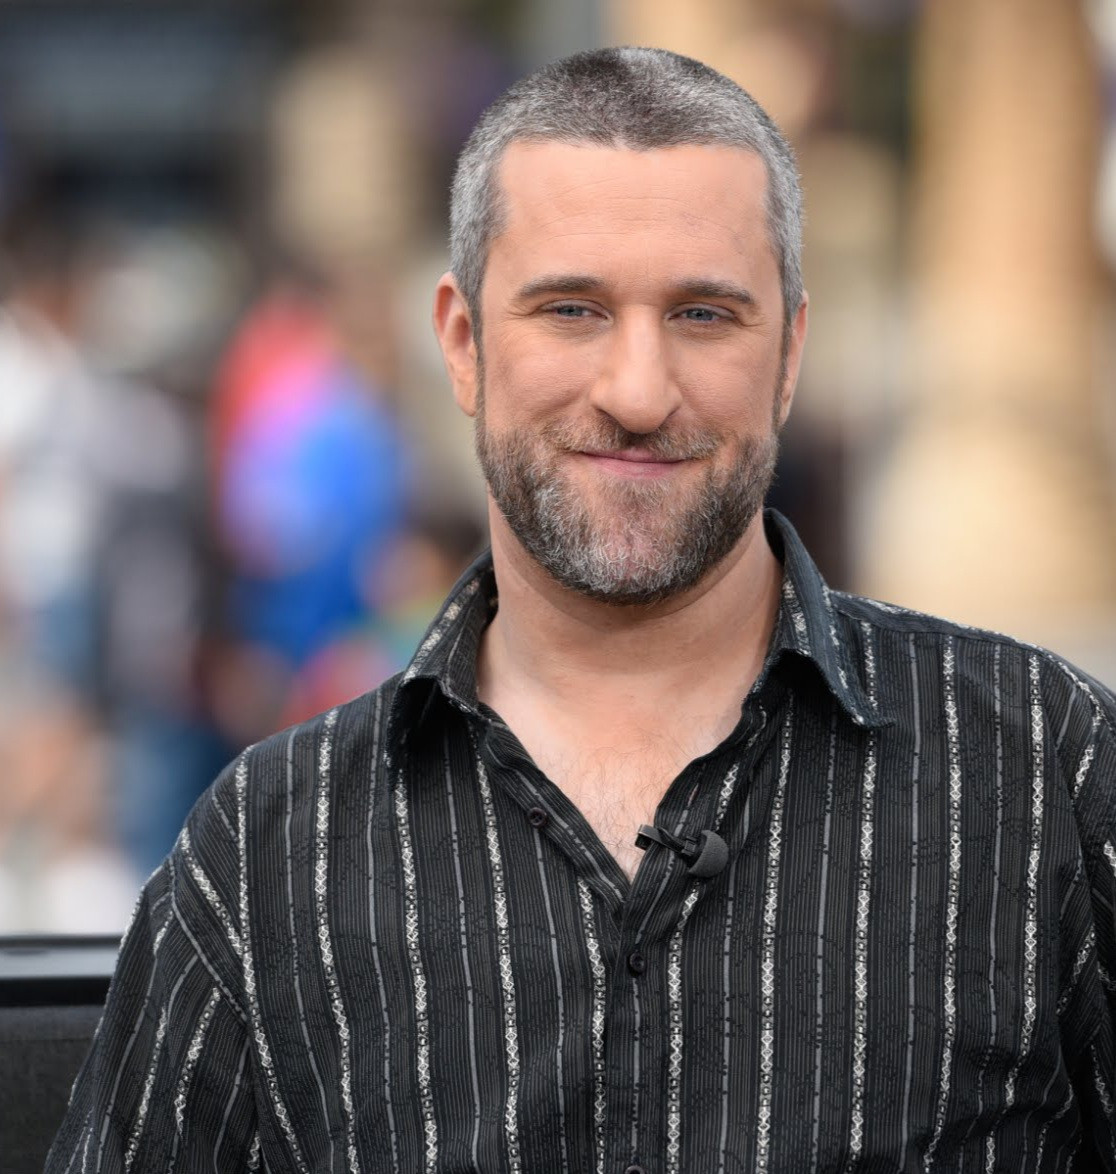 Saved by the Bell star, Dustin Diamond diagnosed with stage 4 cancer